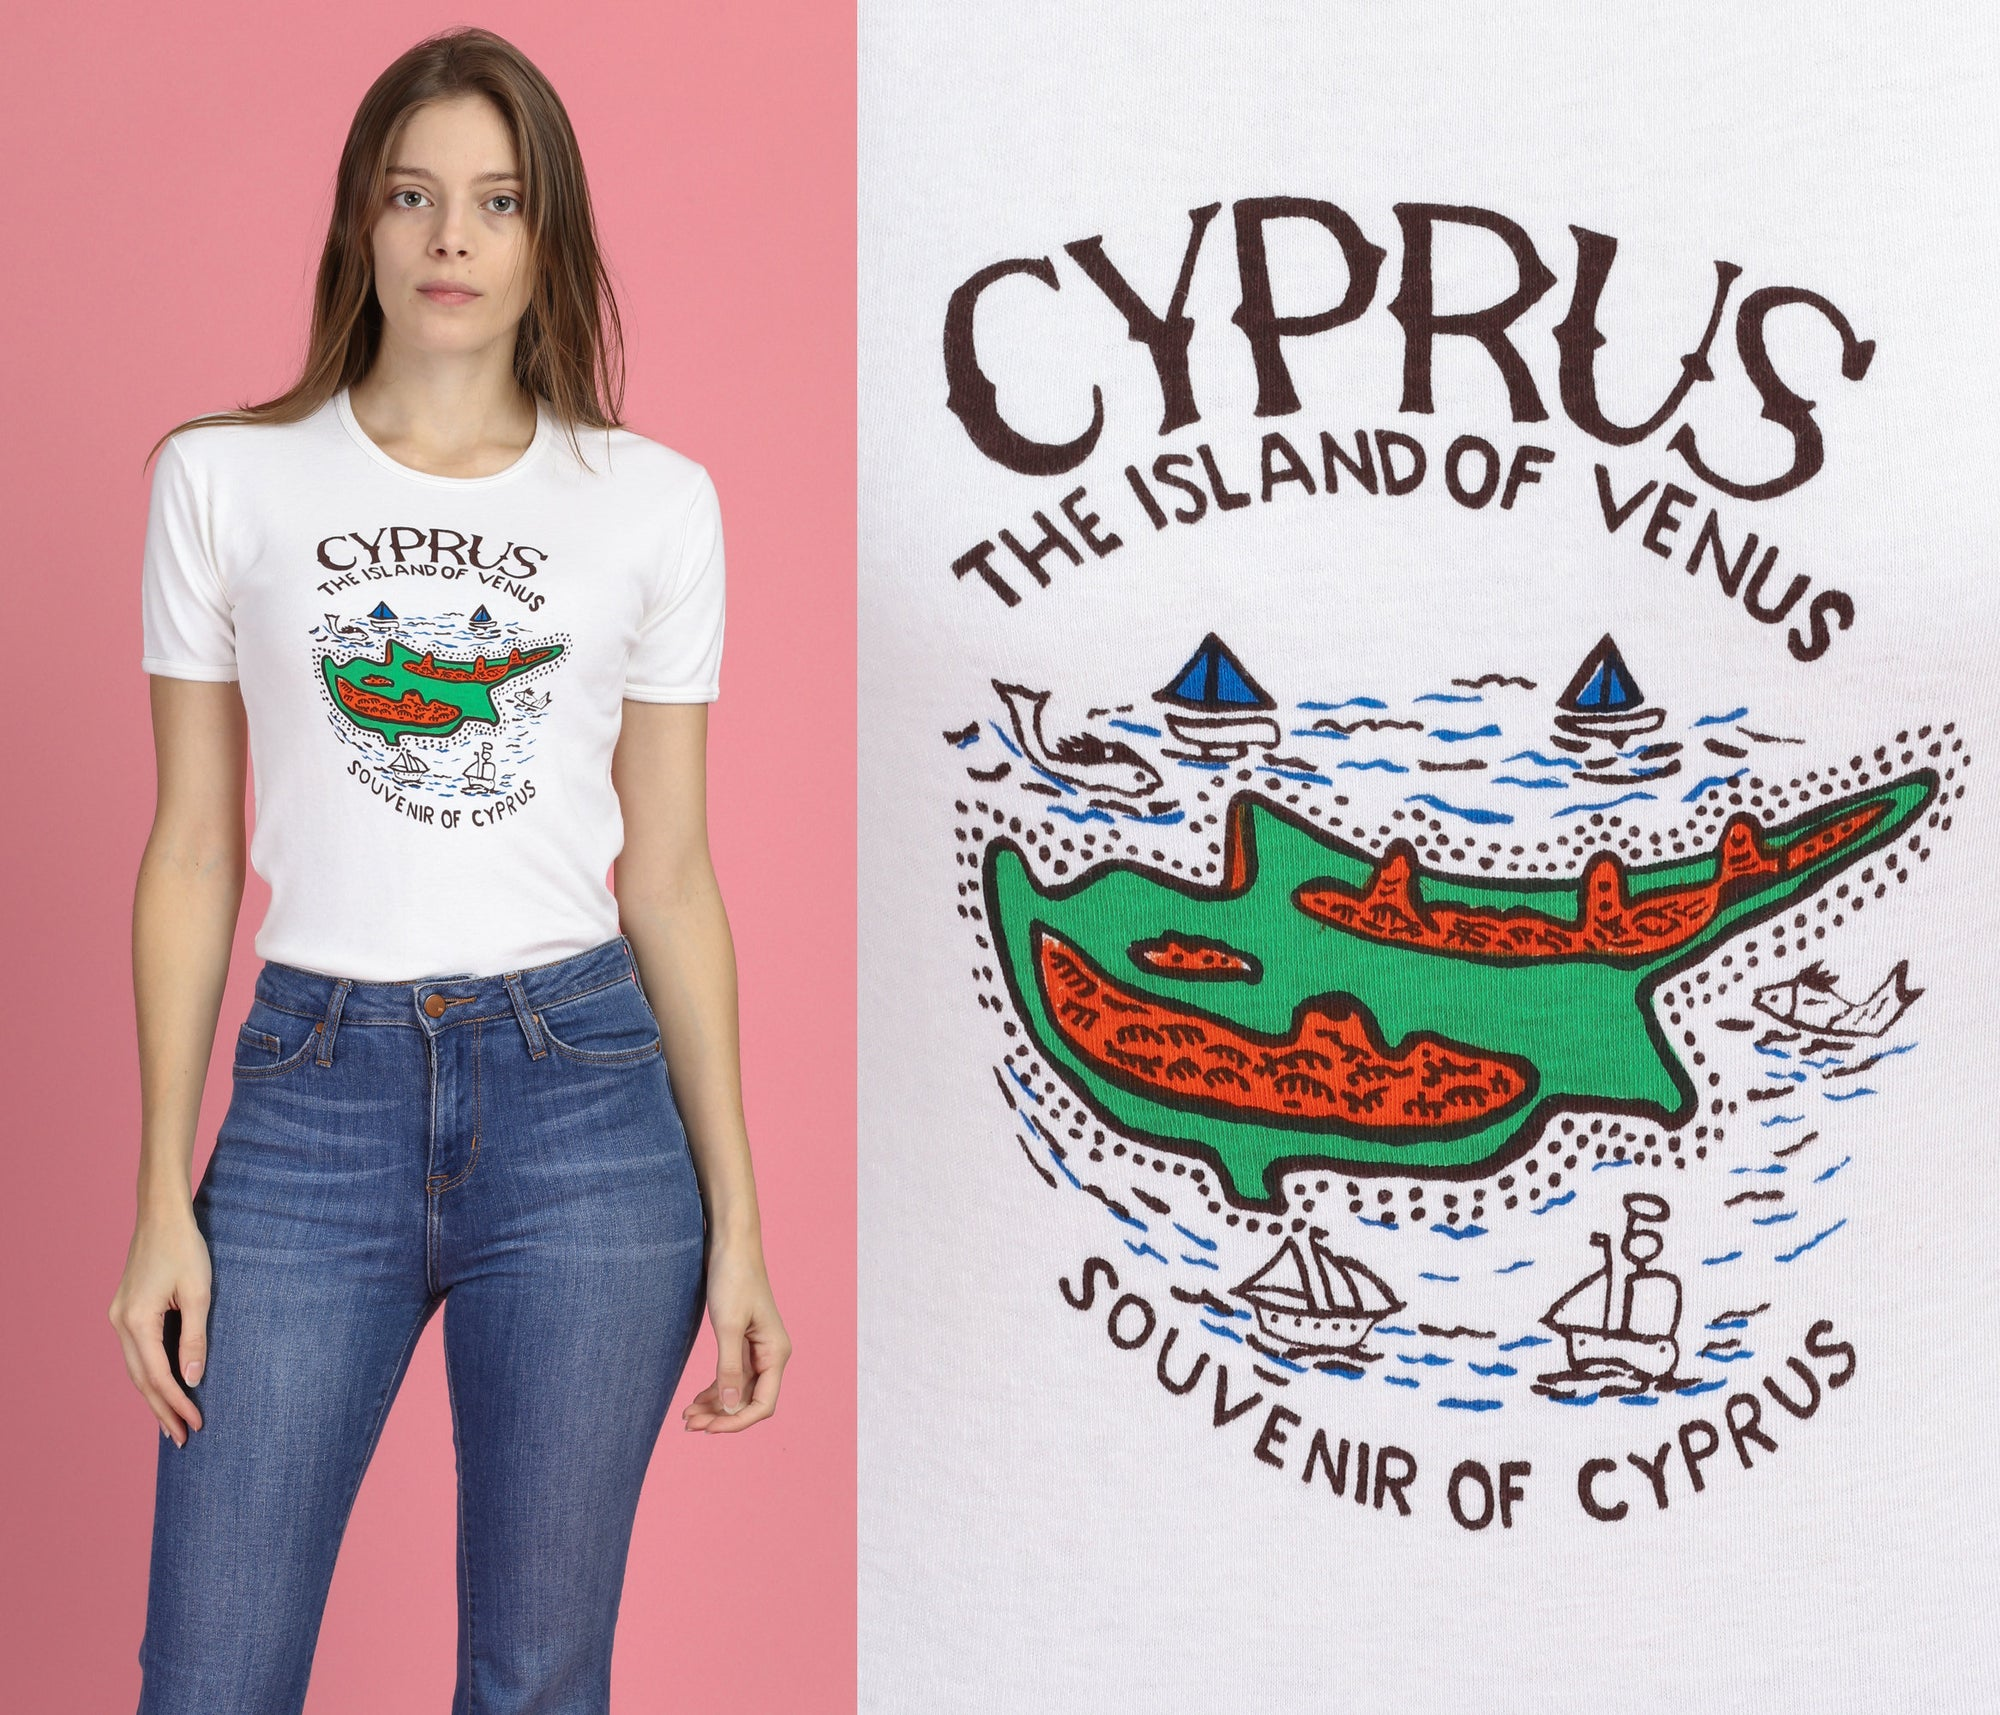 70s Cyprus Island Of Venus T Shirt - Small to Medium